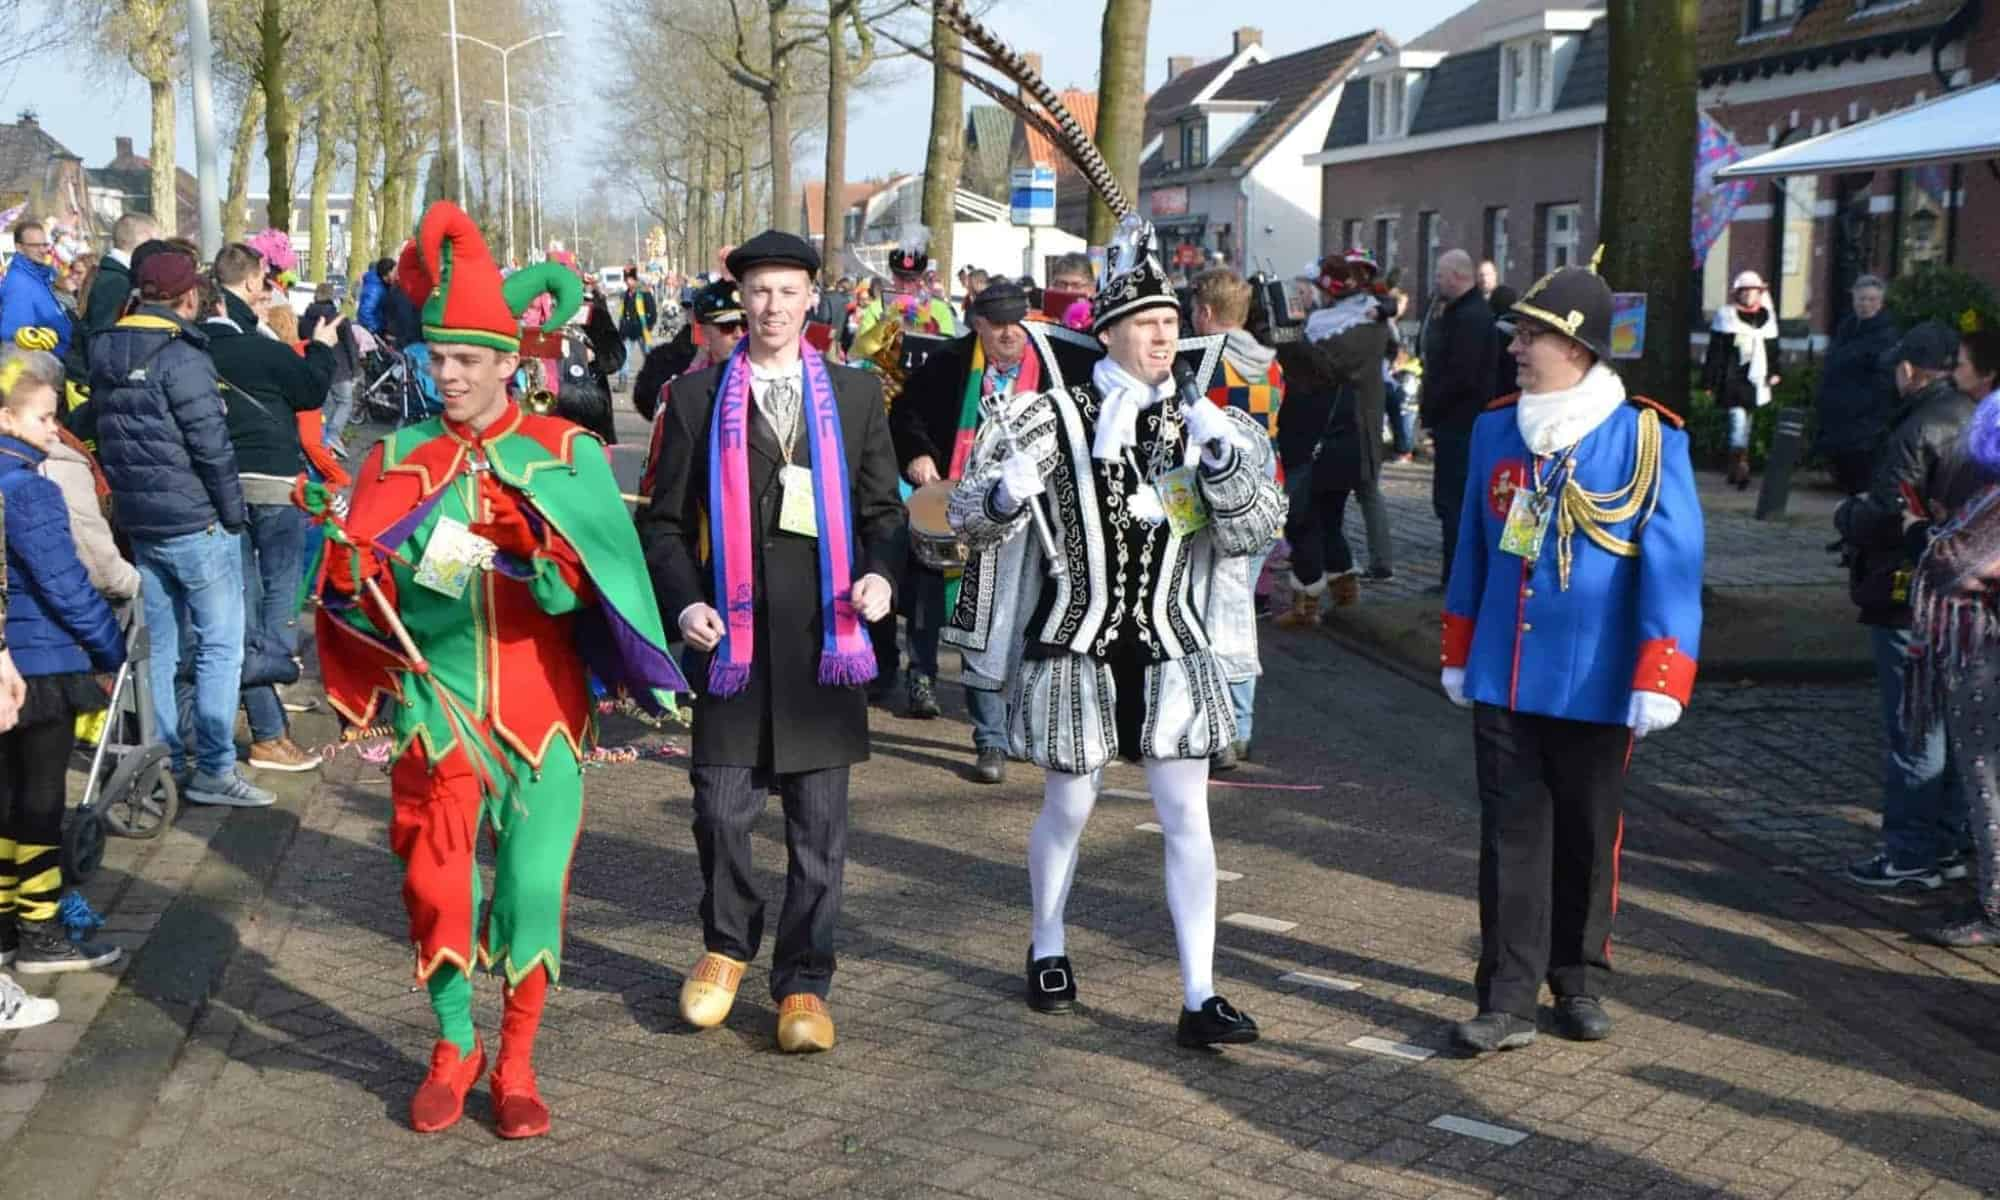 2010 tot 2020 carnaval Wouwse Plantage, motto's